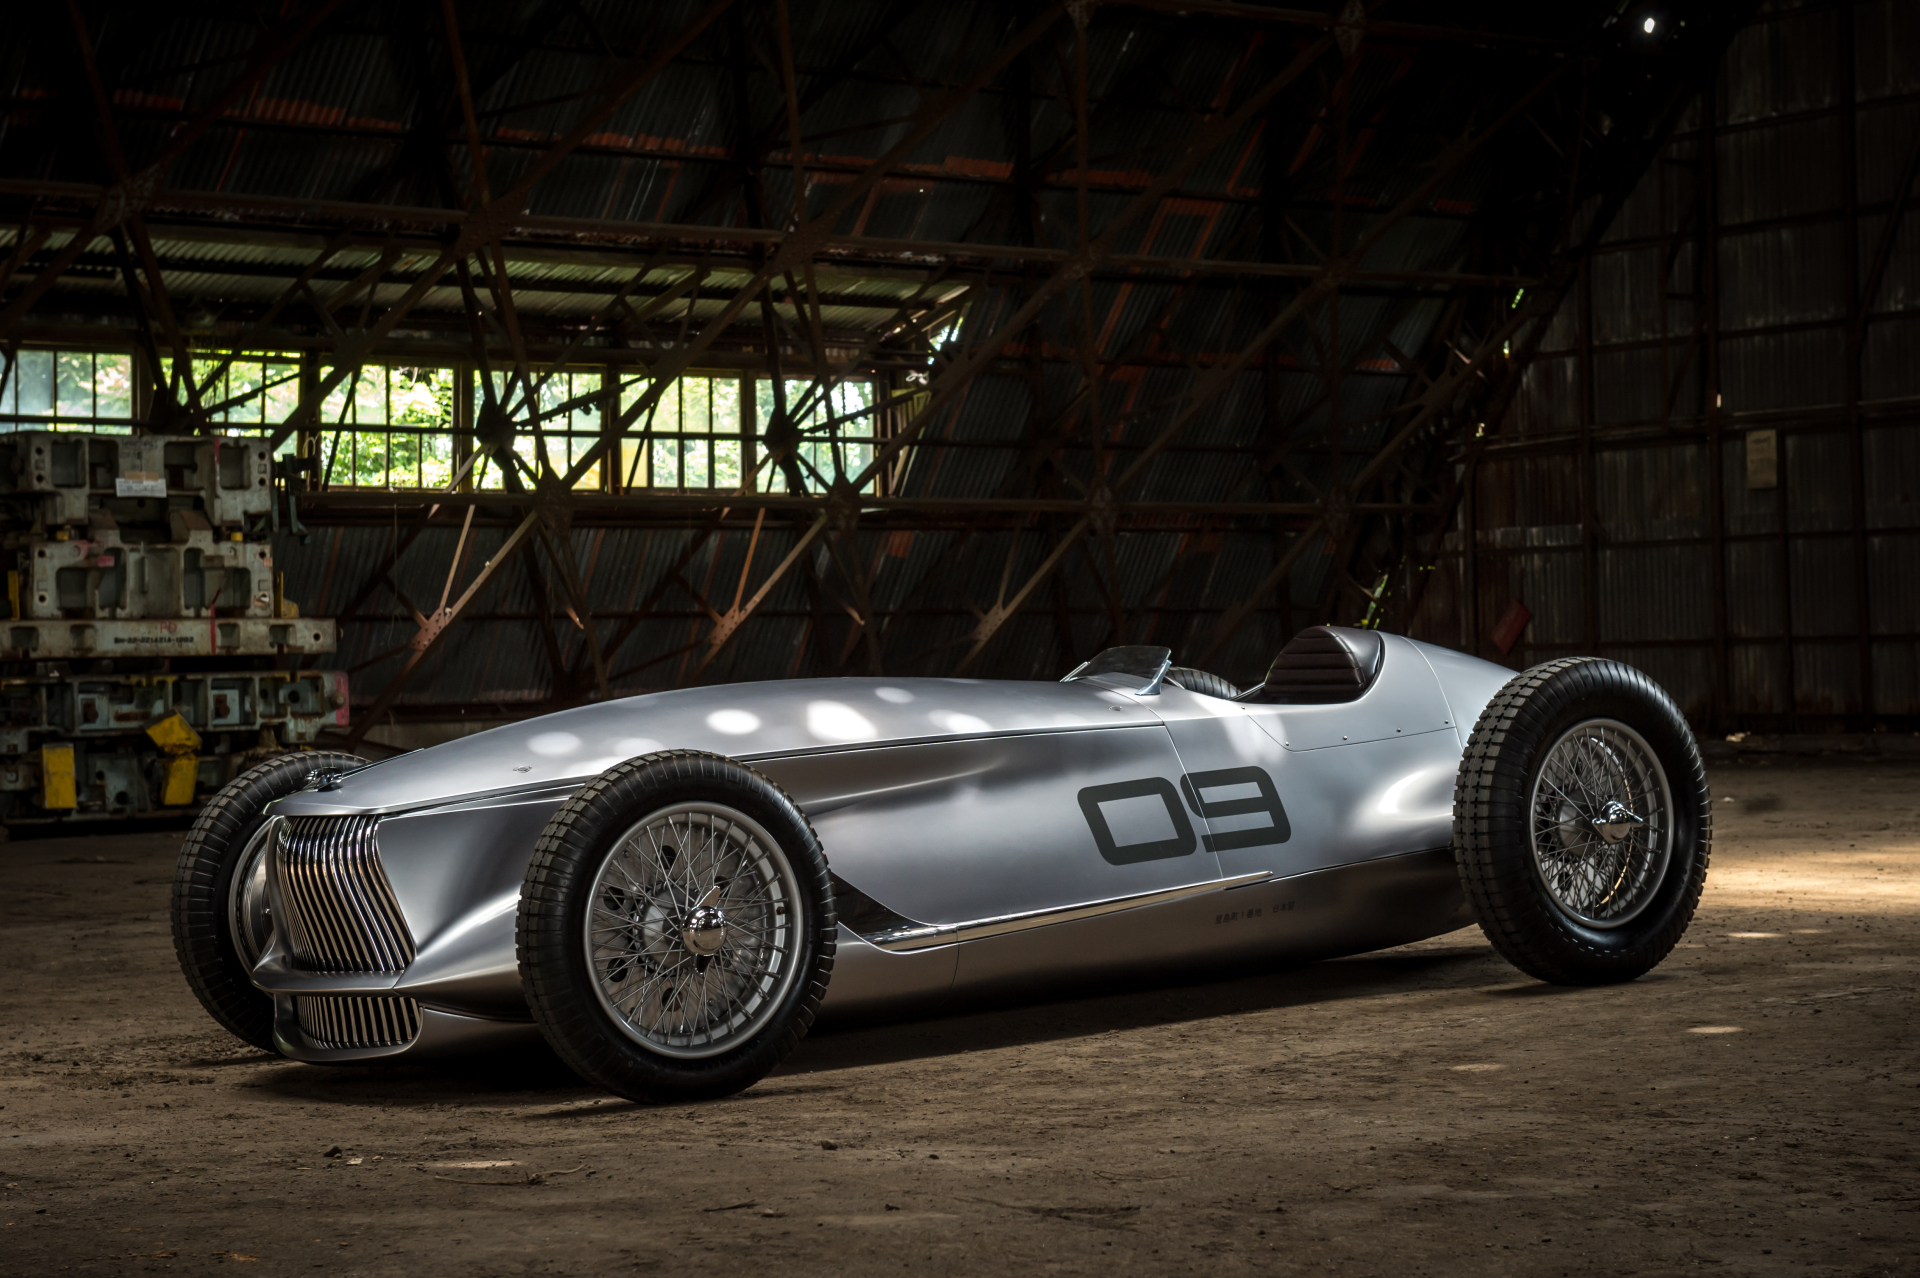 Classic evs infiniti 39 s prototype 9 retro racer speedhunters for South motors infiniti used cars